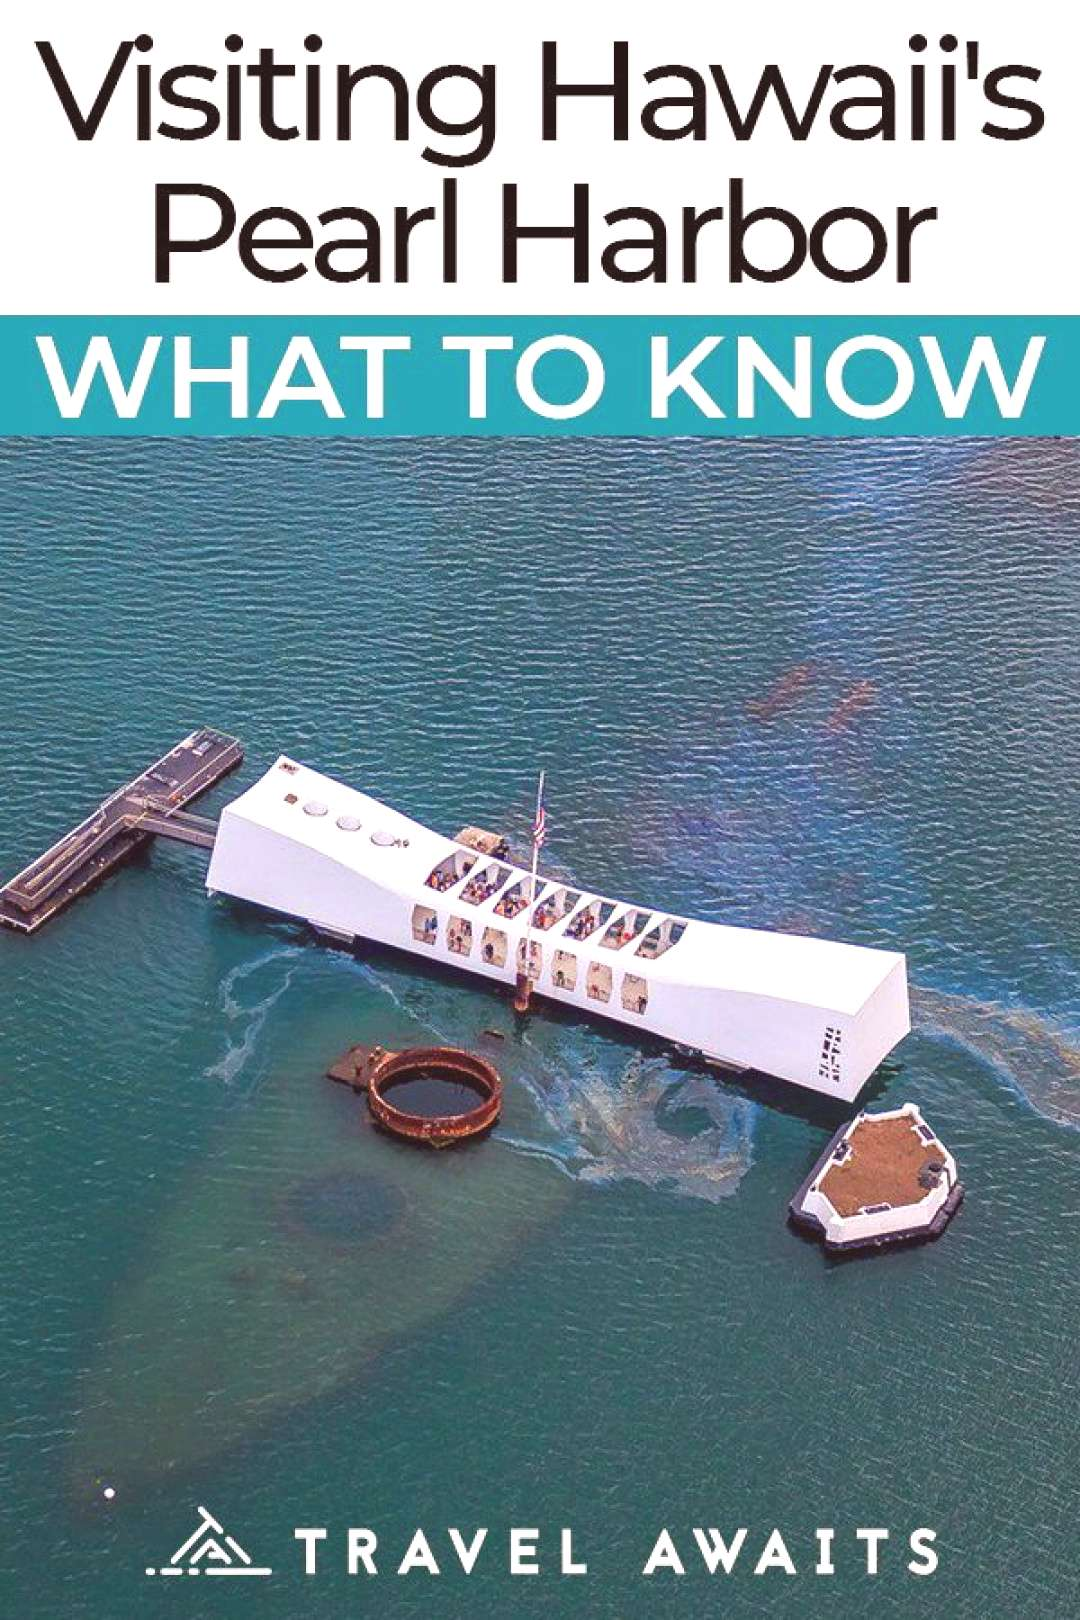 Visiting Hawaiis Pearl Harbor What To Know